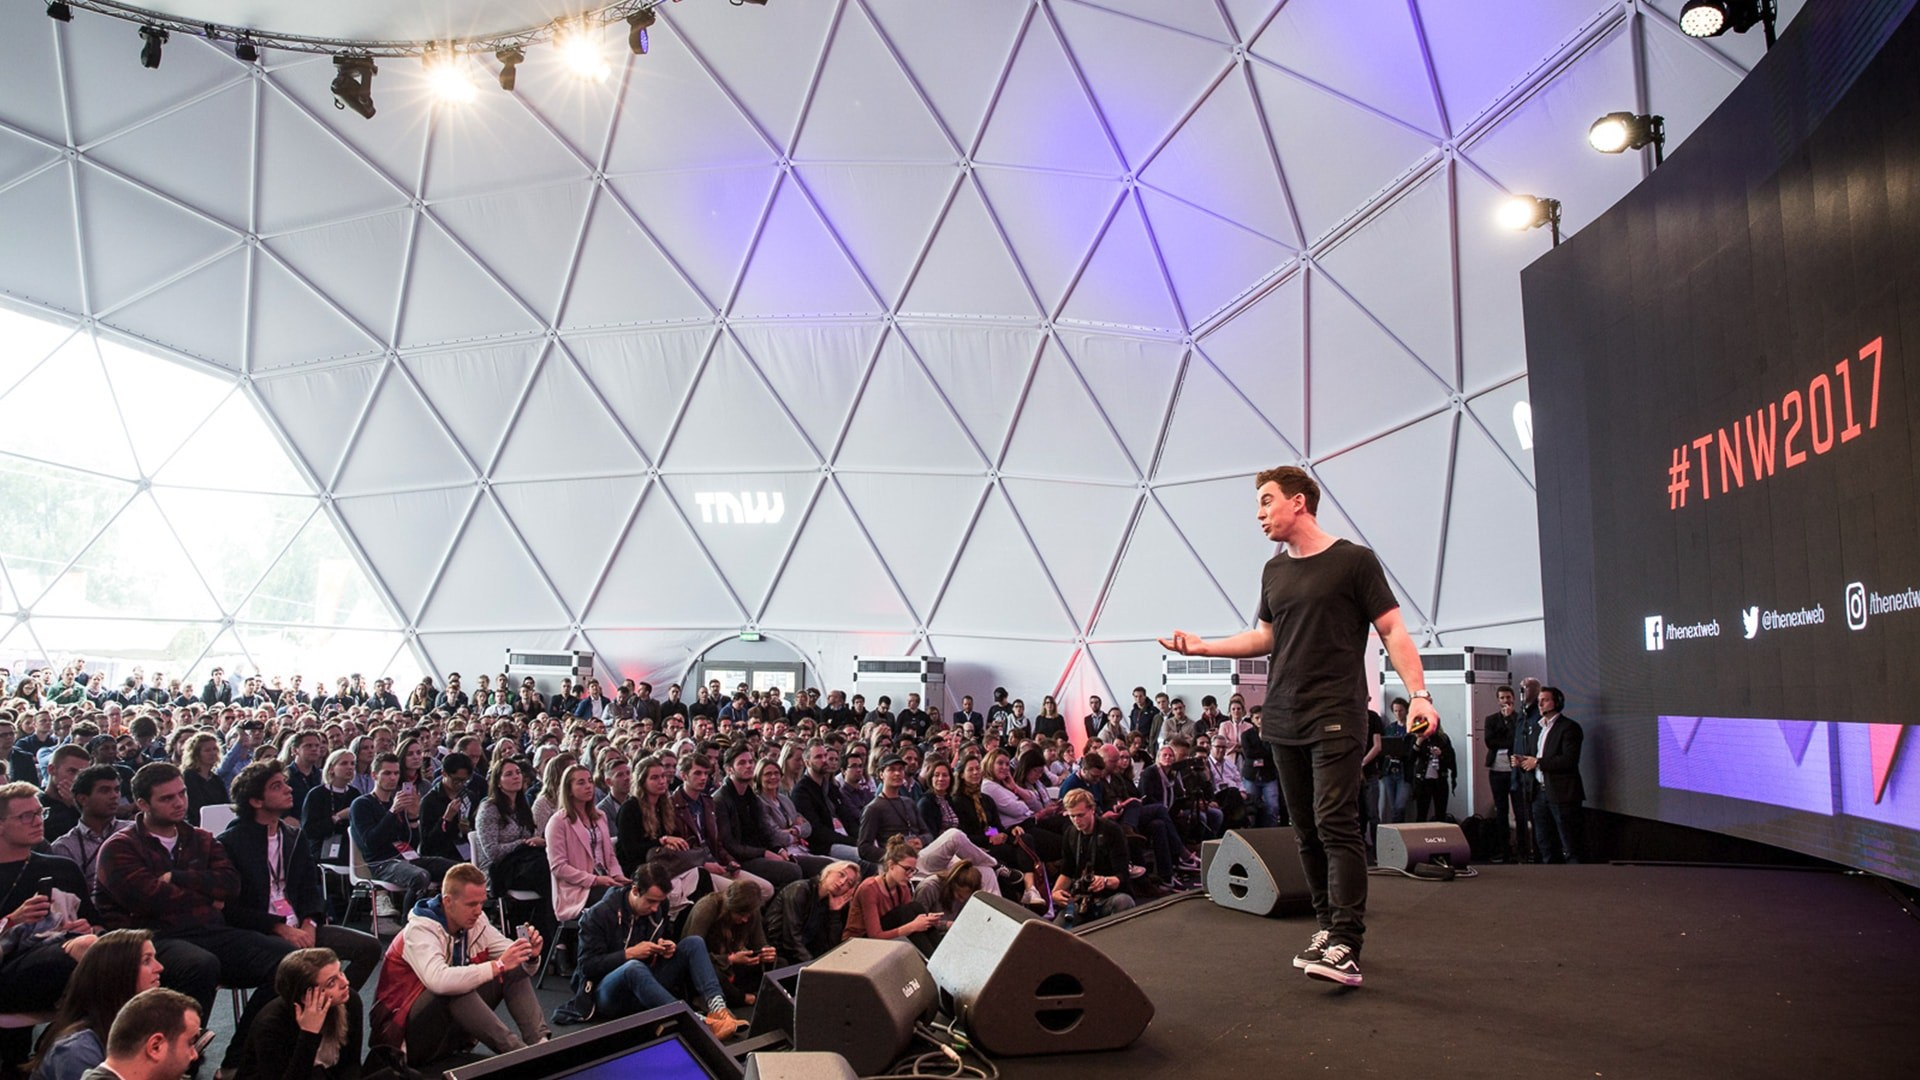 TNW Music Summit - In Case You Missed It